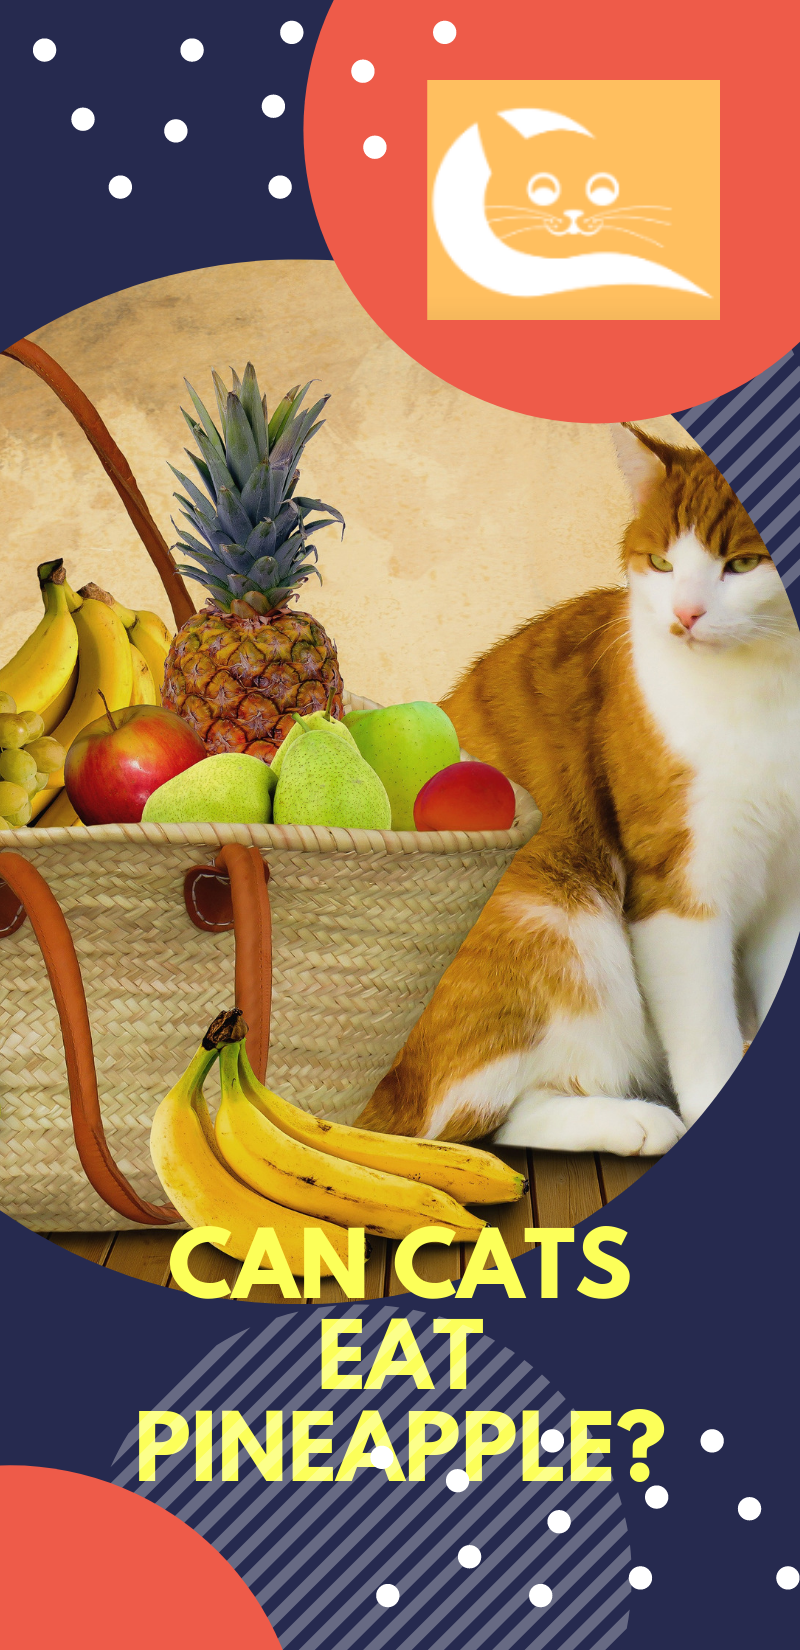 Can Cats Eat Pineapple Wellness cat food, Pineapple